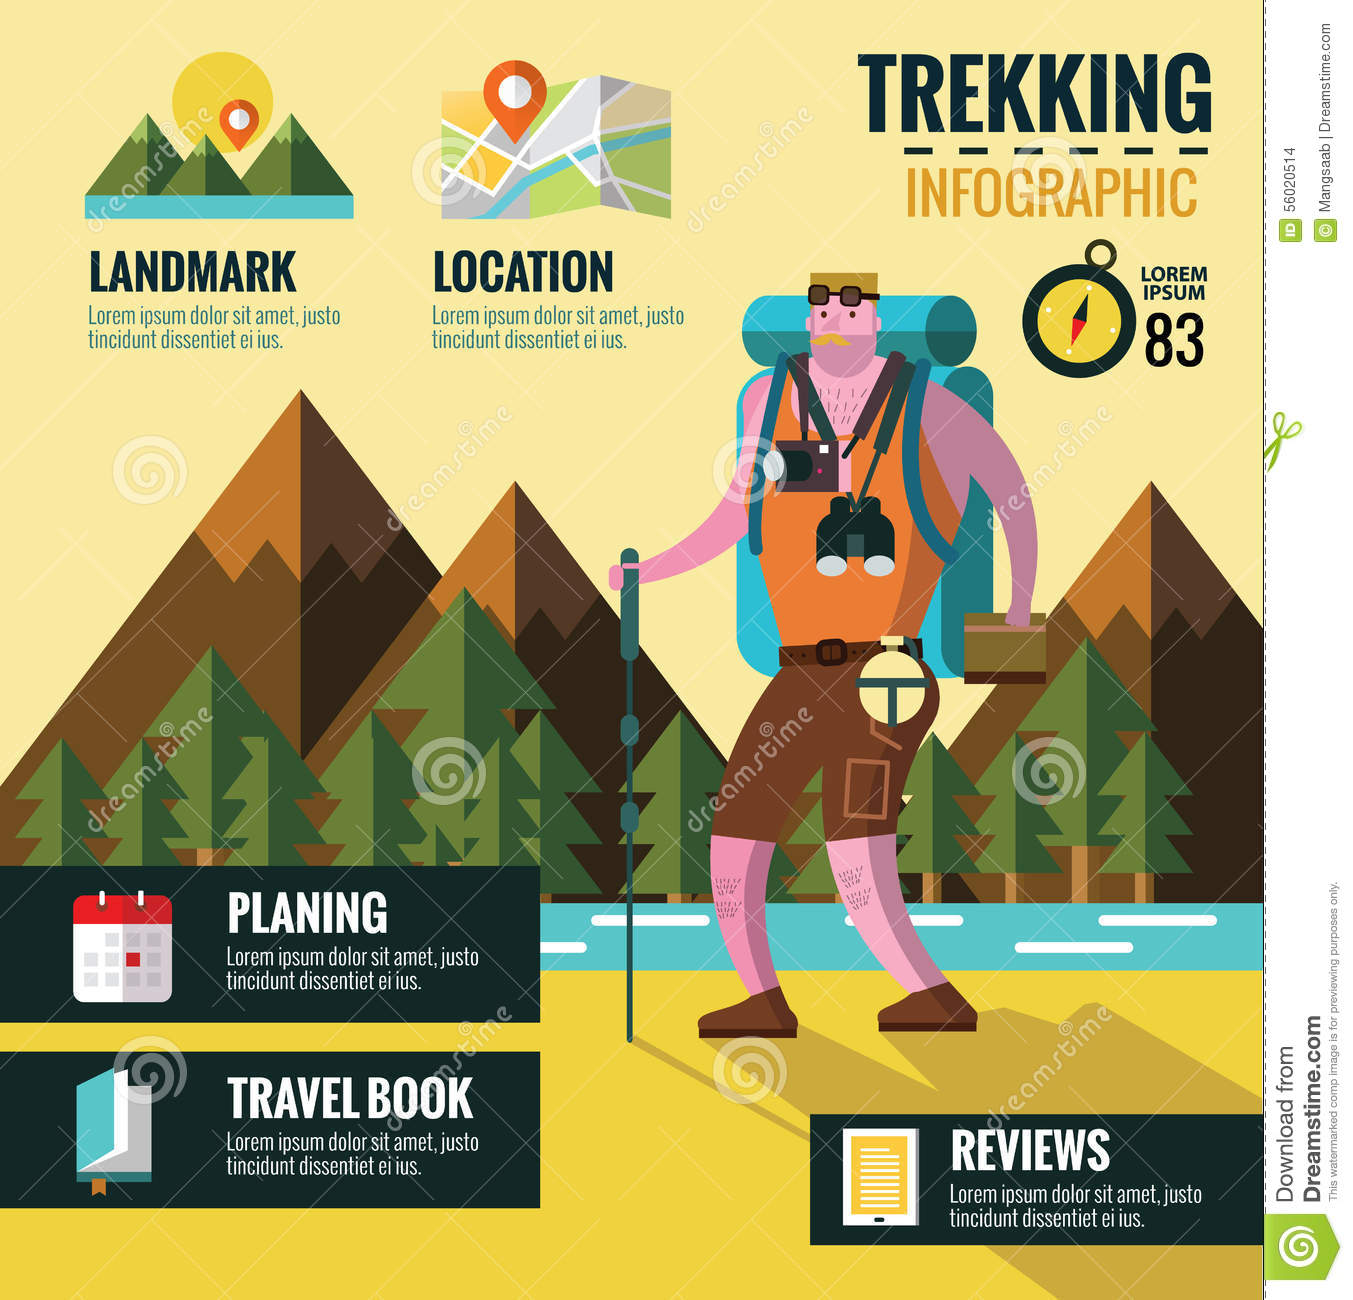 Hiking Graphic Images